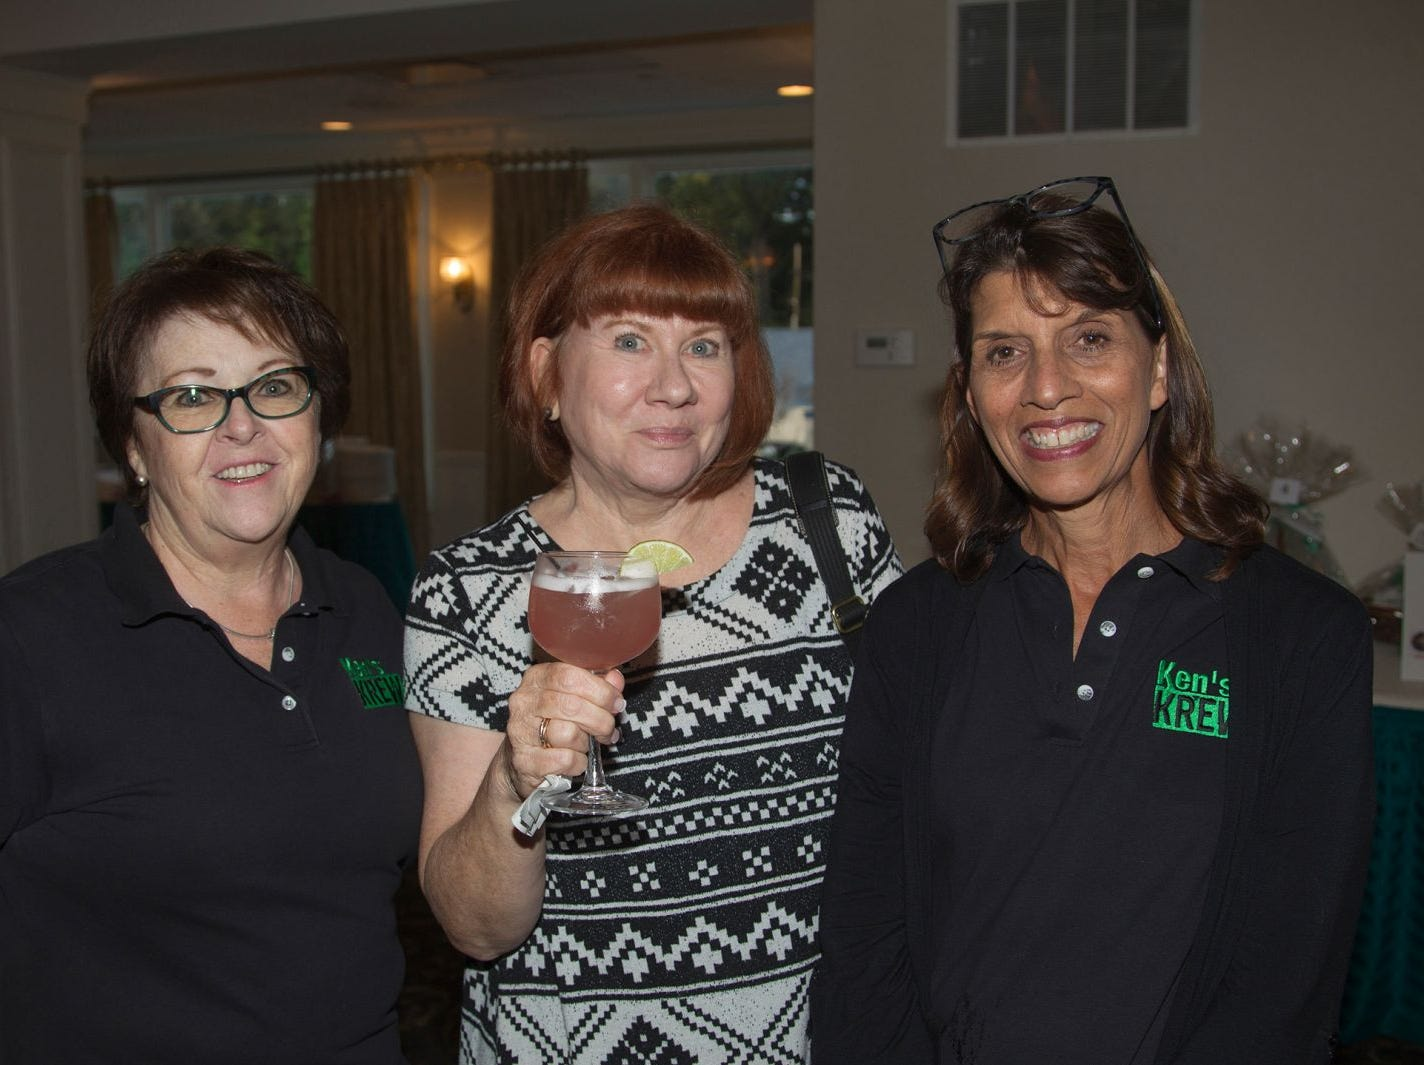 Karan Lapera, Joanne Ivie, Diane Macaluso. Ken's Krew Golf Outing at White Beeches Country Club in Haworth. Ken's Krew provides vocational training and job placement services for young adults with intellectual and developmental disabilities. 10/09/2018